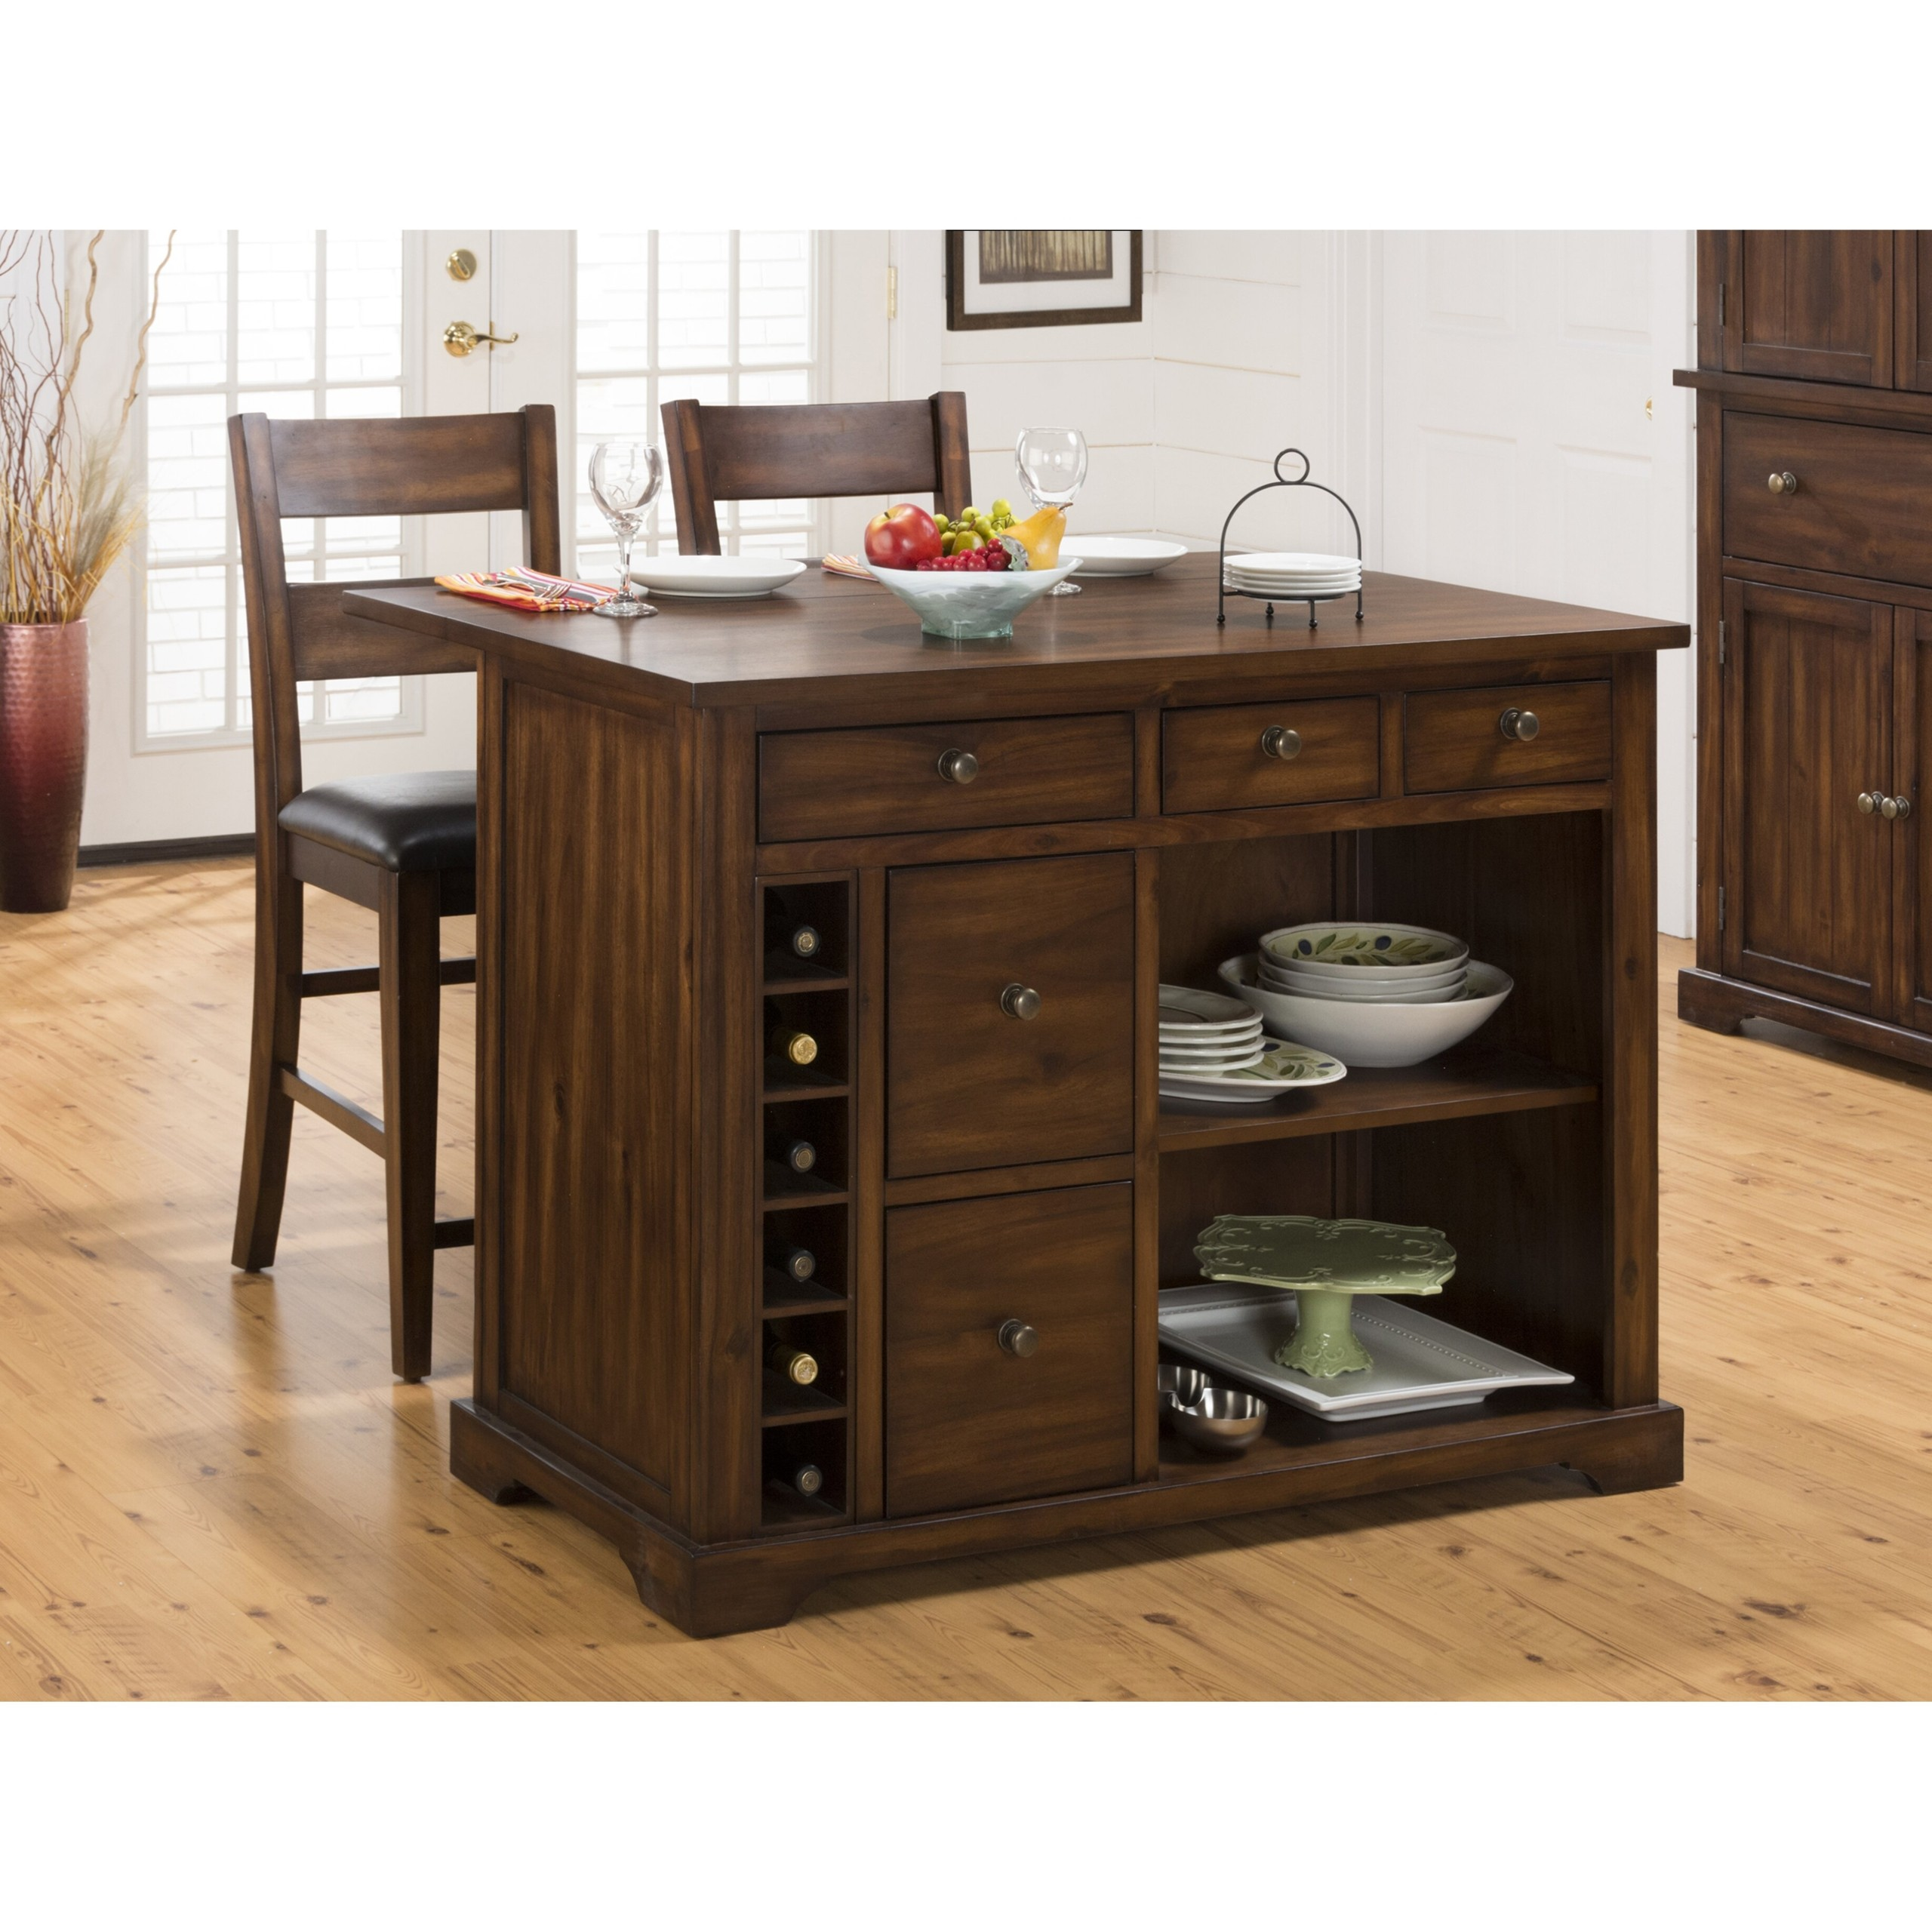 Cooke County 3 Piece Kitchen Island Set